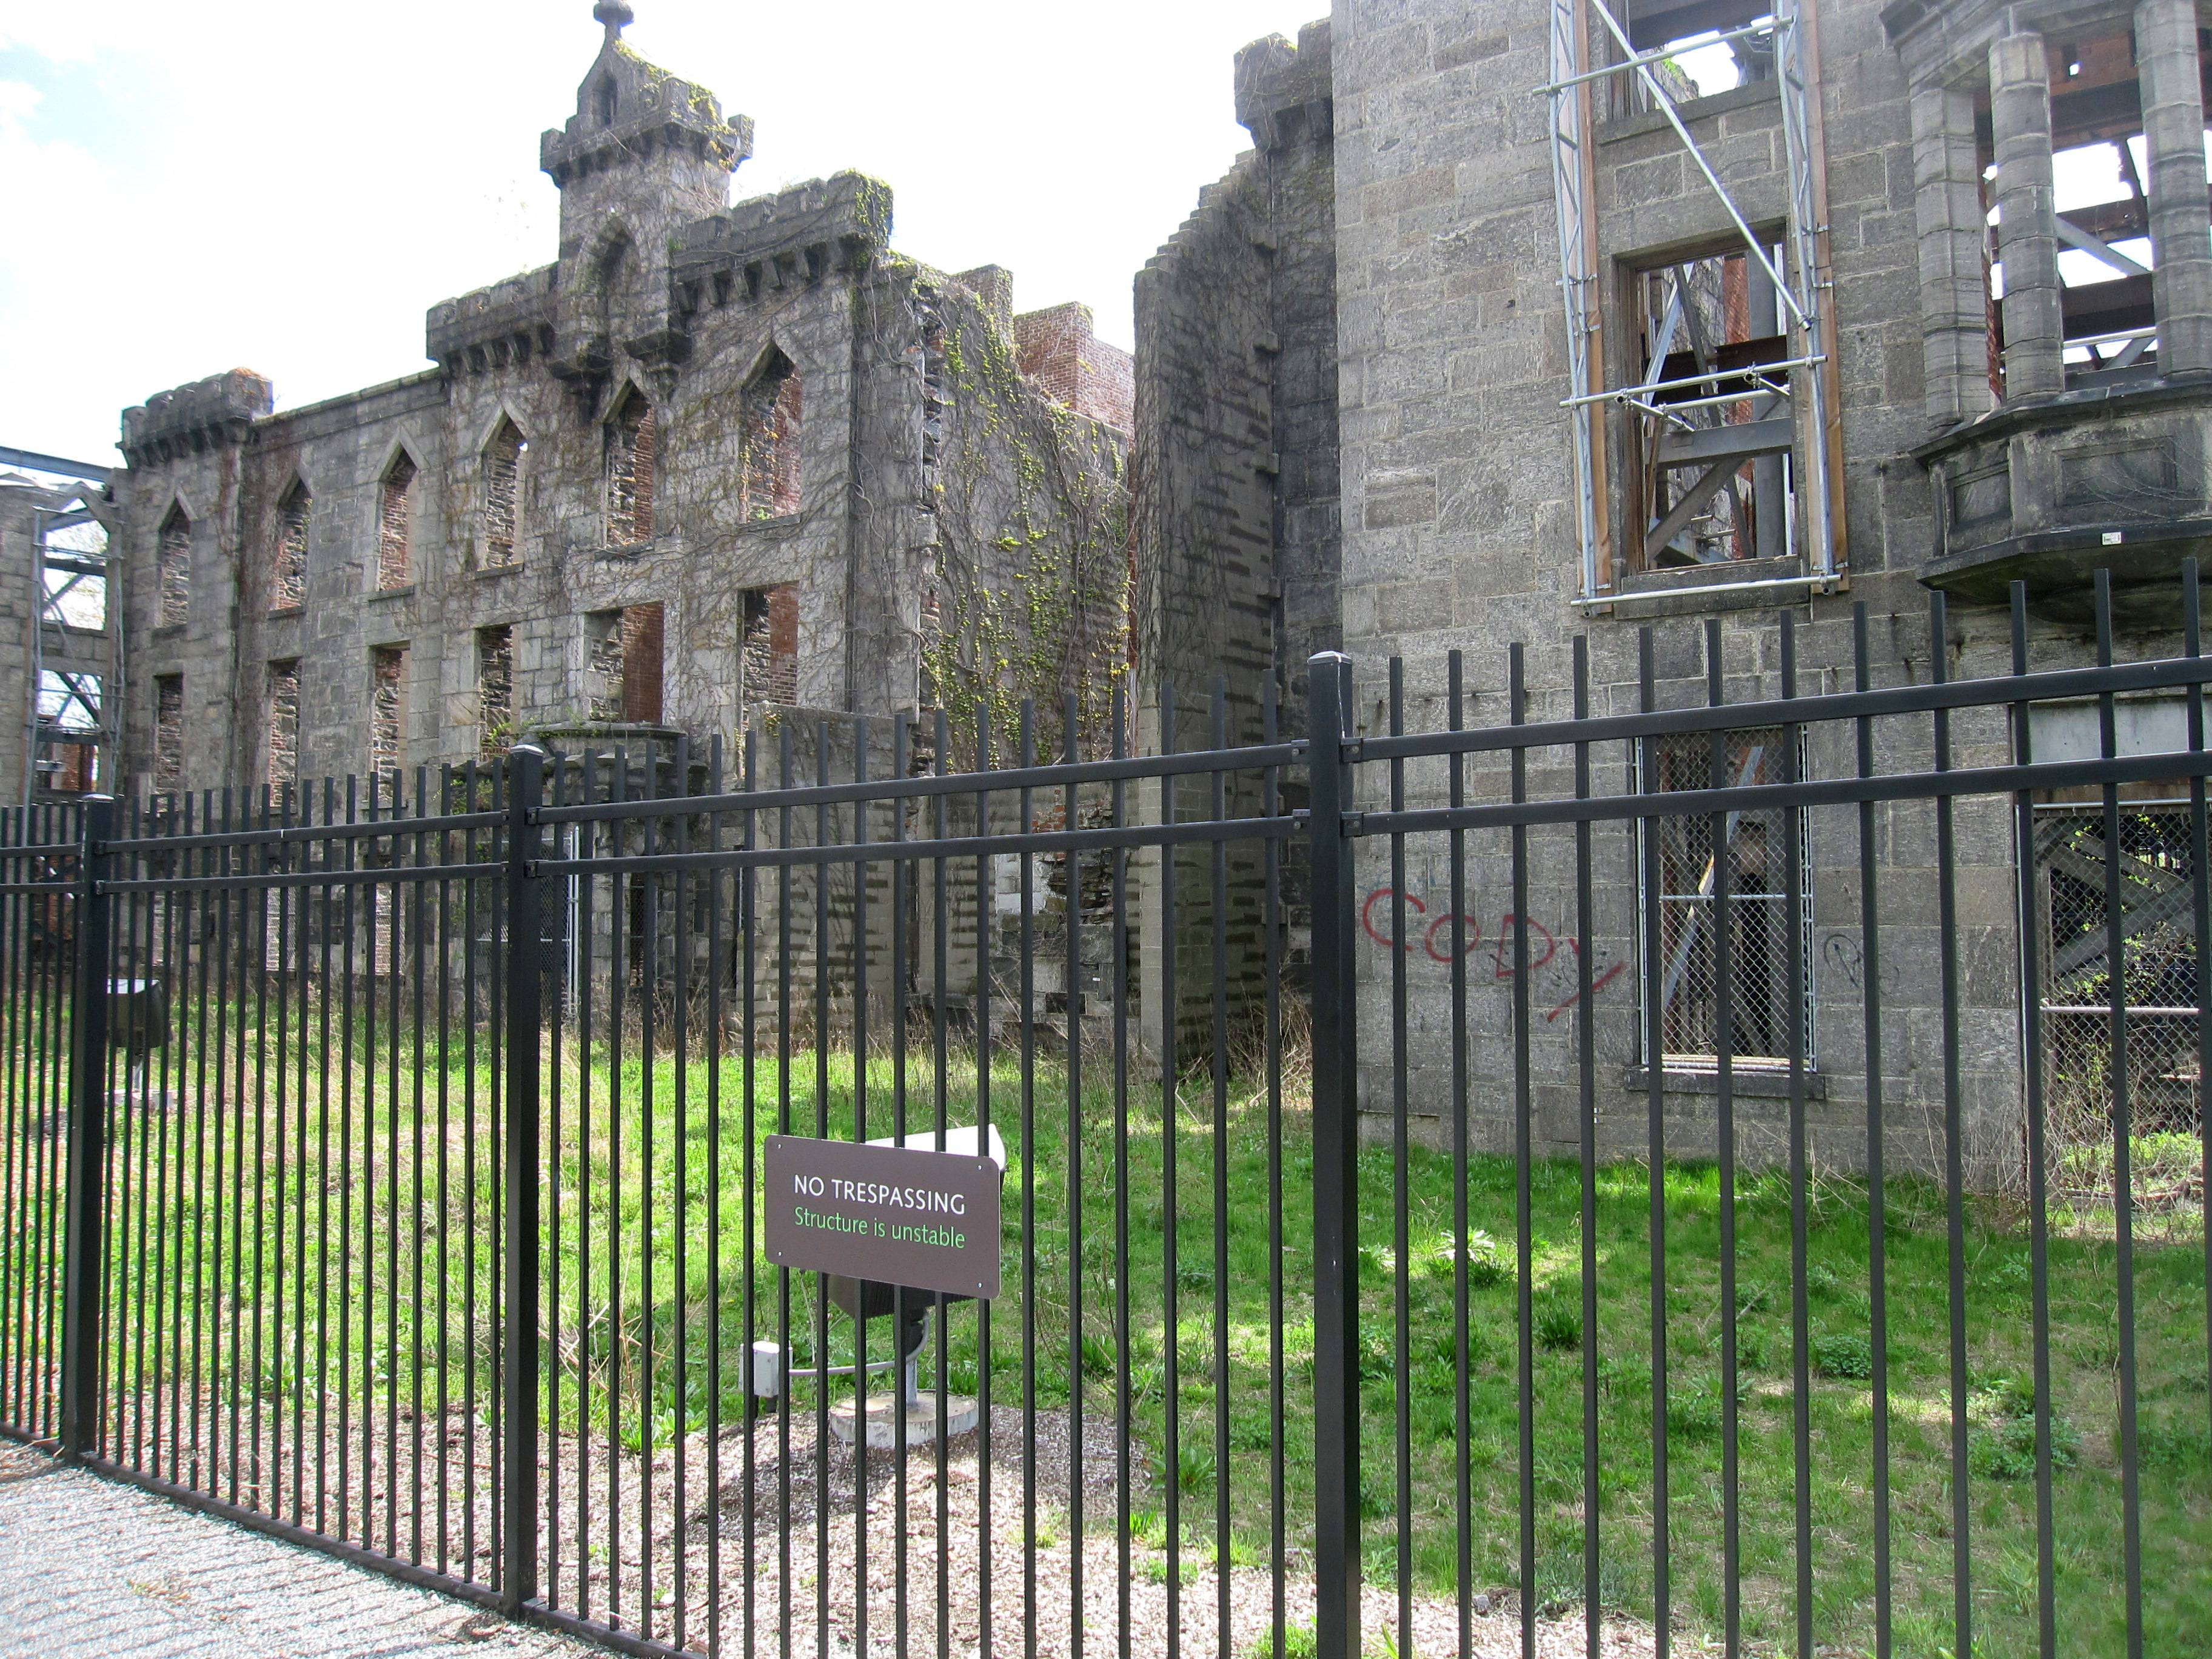 The Renwick Ruin at Franklin D. Roosevelt Four Freedoms Park in New York is a former smallpox hospital that opened in 1856 and was abandoned in the 1950s.